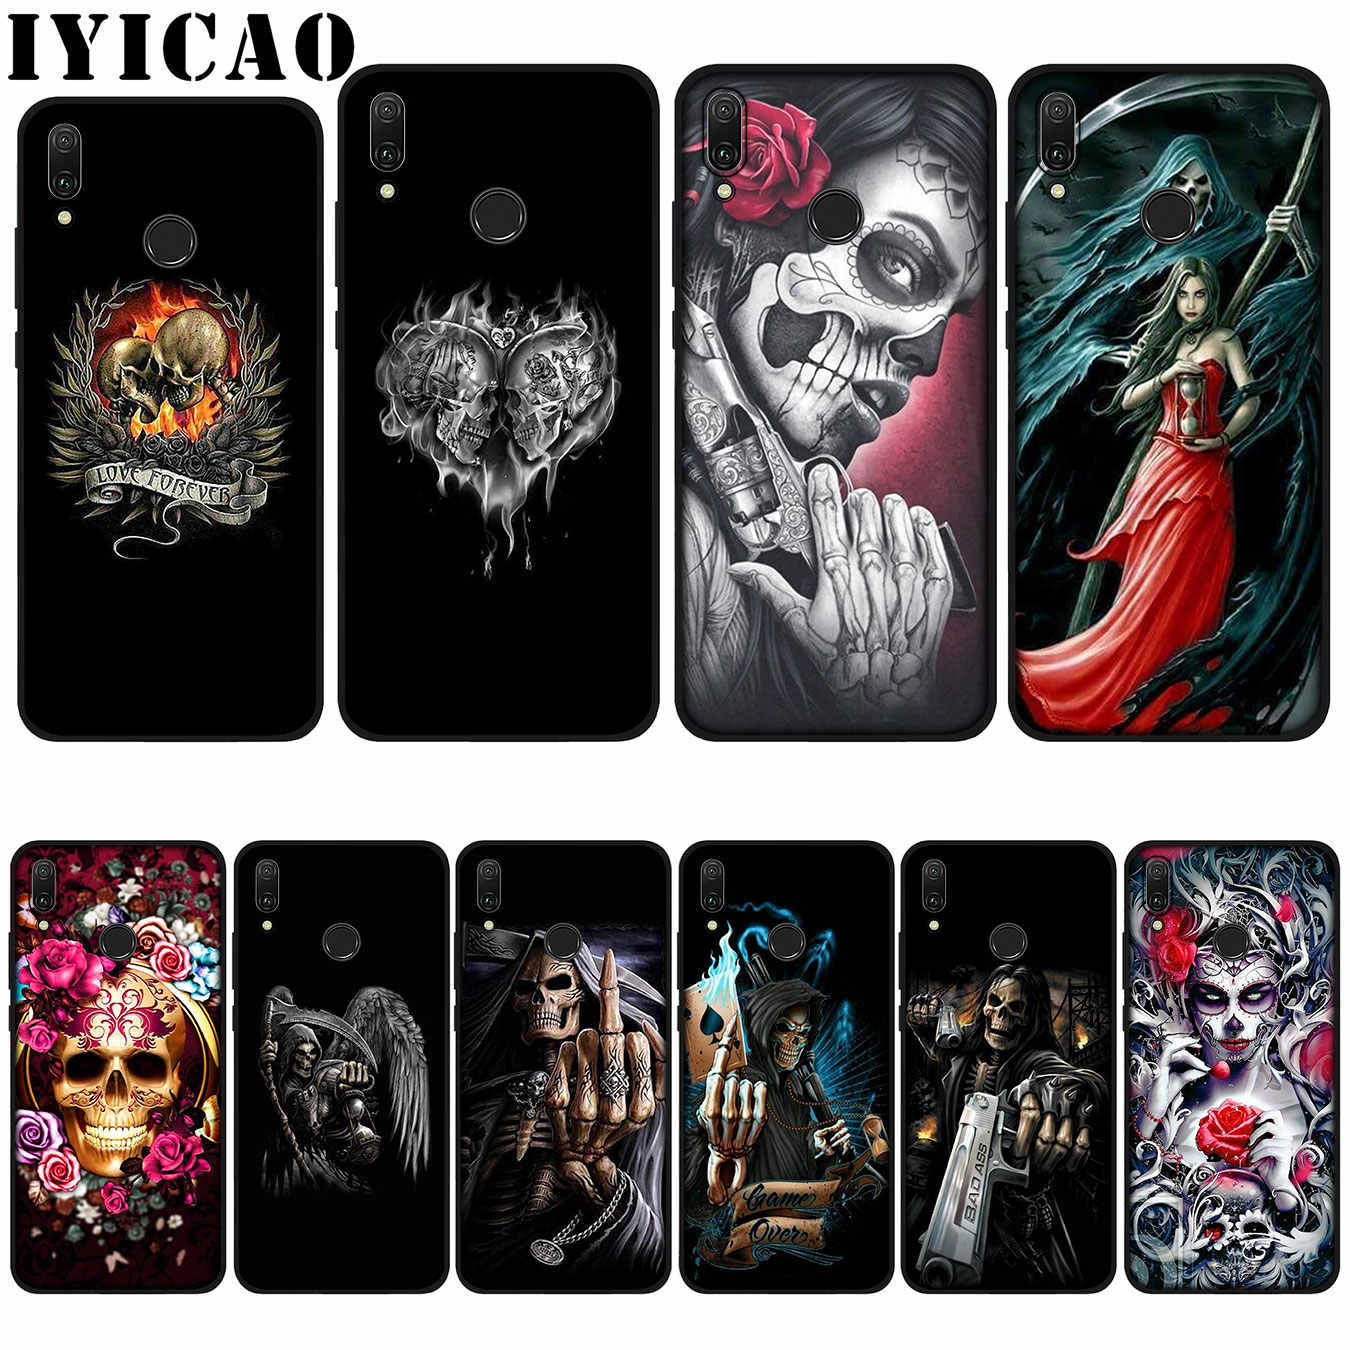 IYICAO Grim Reaper Skull Skeleton love Soft Case for Huawei P20 Pro P10 P8 P9 P30 Lite Mini 2017 P Smart 2019 Cover